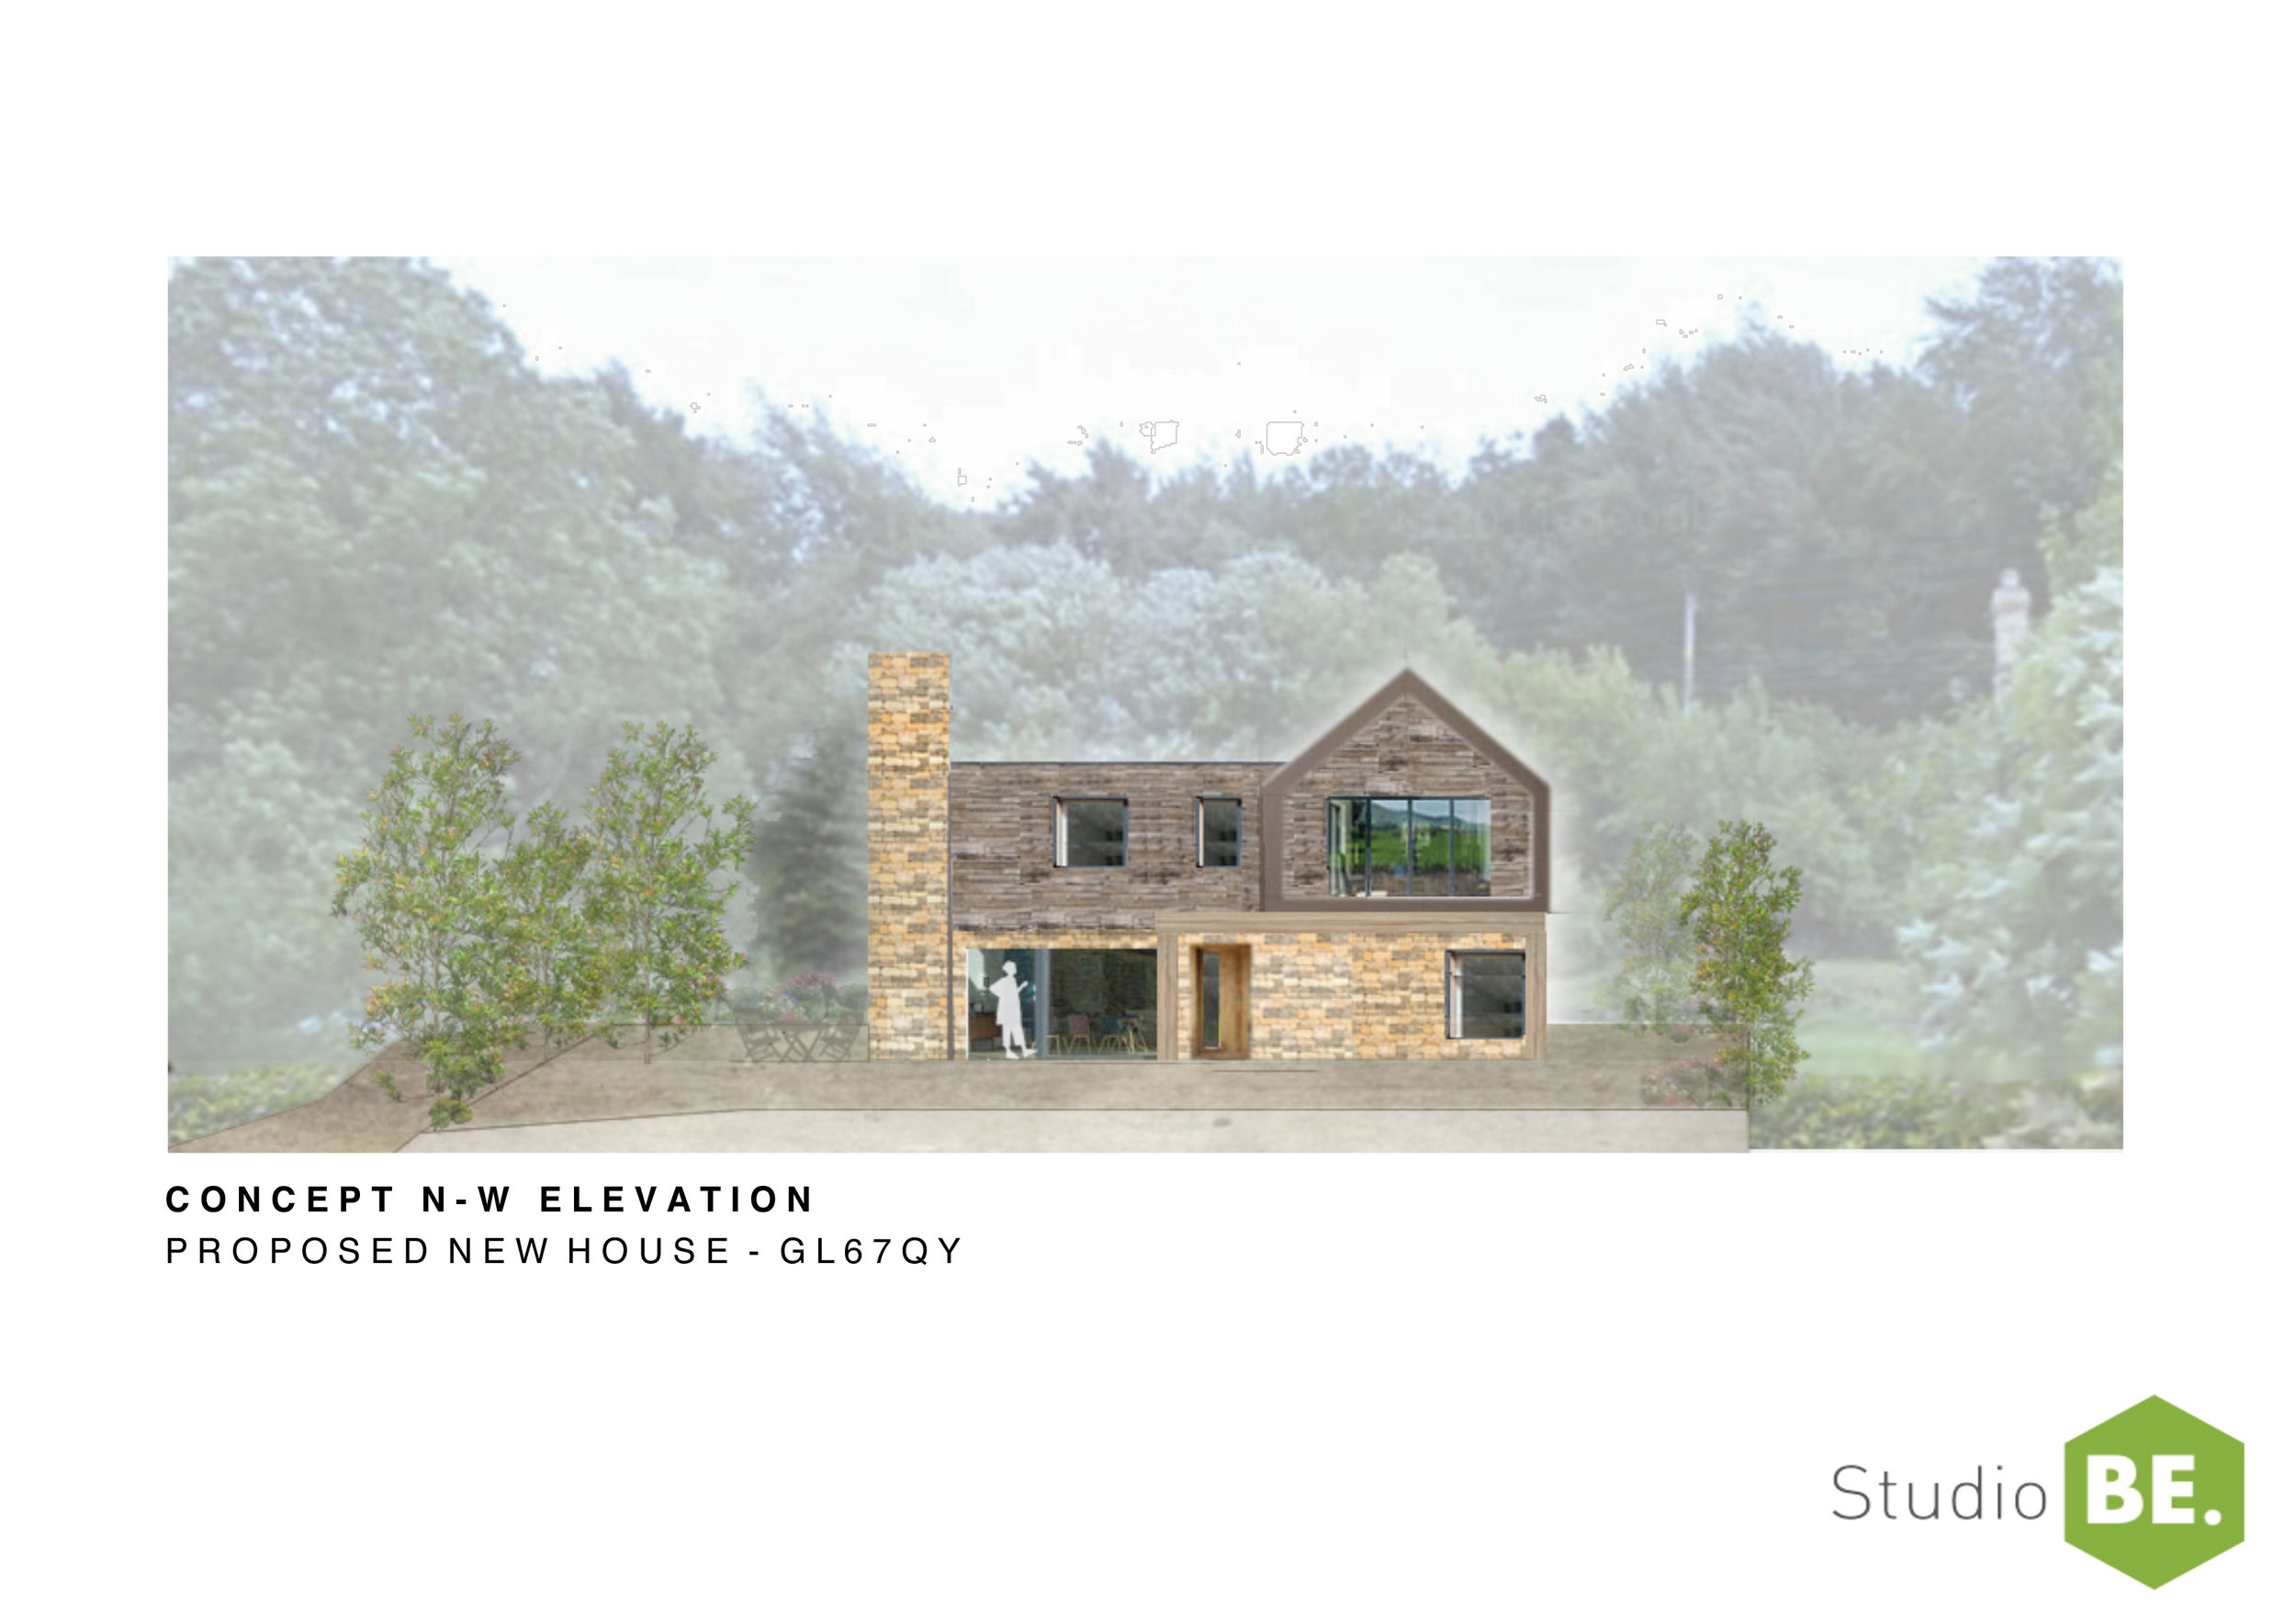 The project is a healthy, low energy new build house near Stroud, Gloucestershire. The key objective is for that building provides a regenerative, non-toxic living environment to reduce the applicants on-going multiple chemical sensitivity (msc) condition.